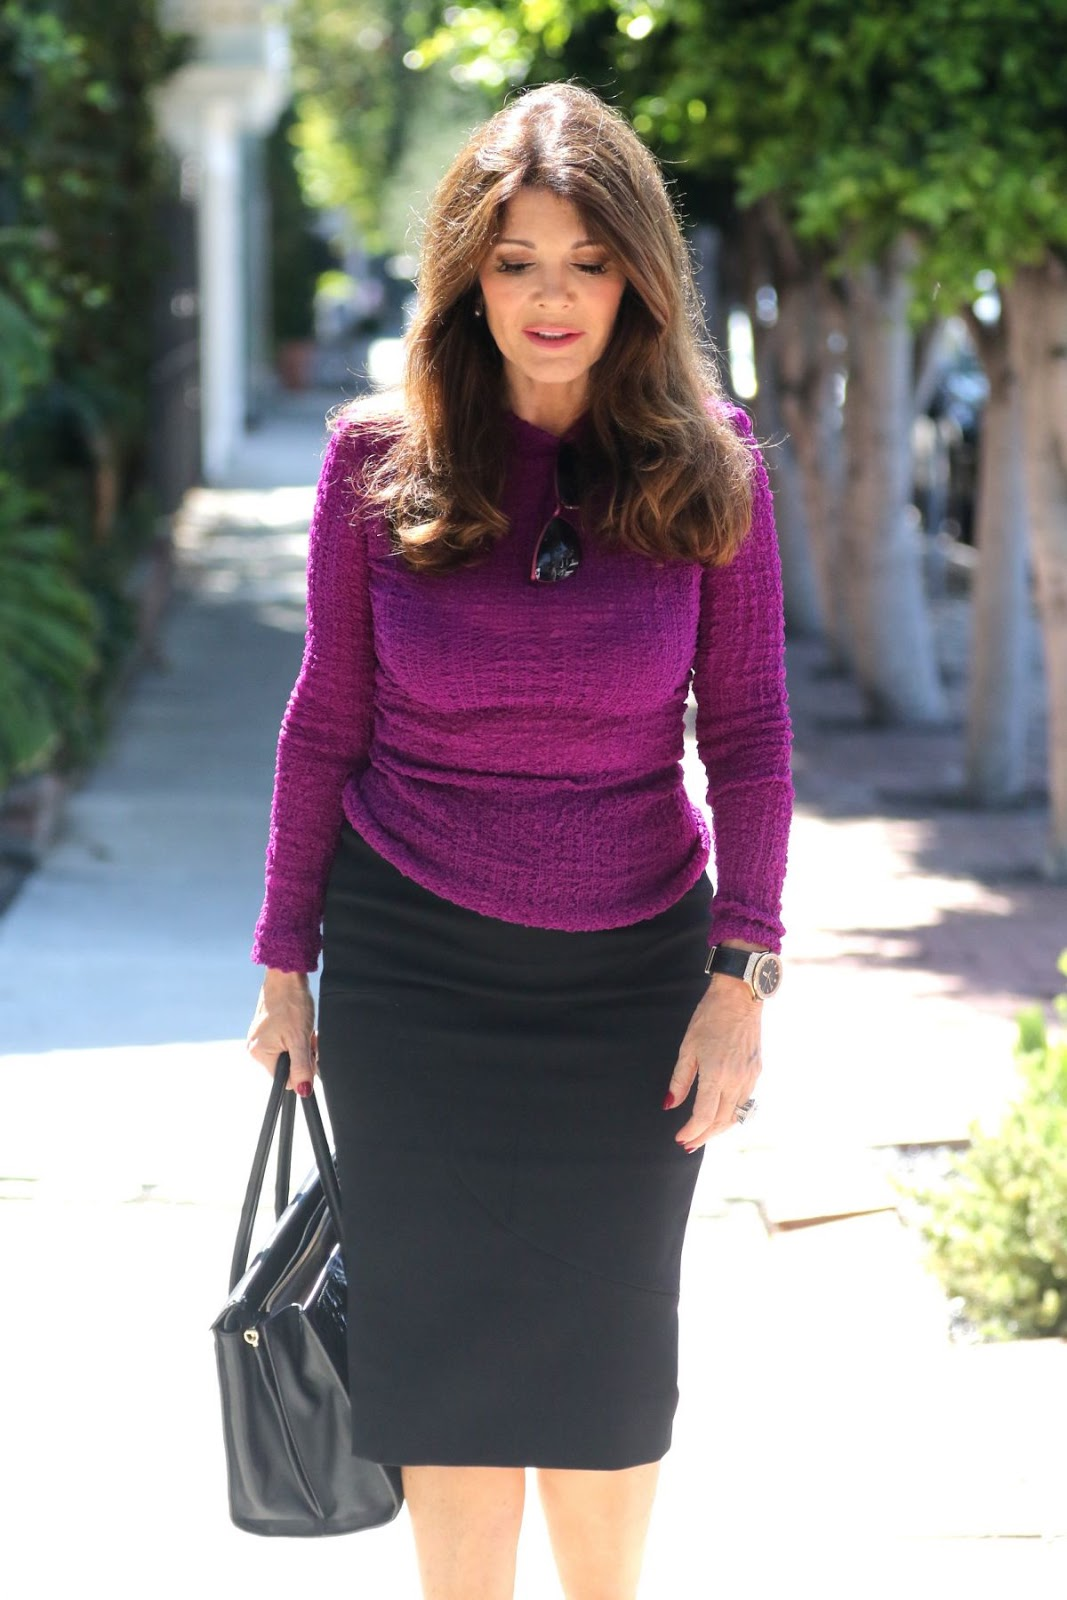 Lisa Vanderpump out for Shopping in West Hollywood